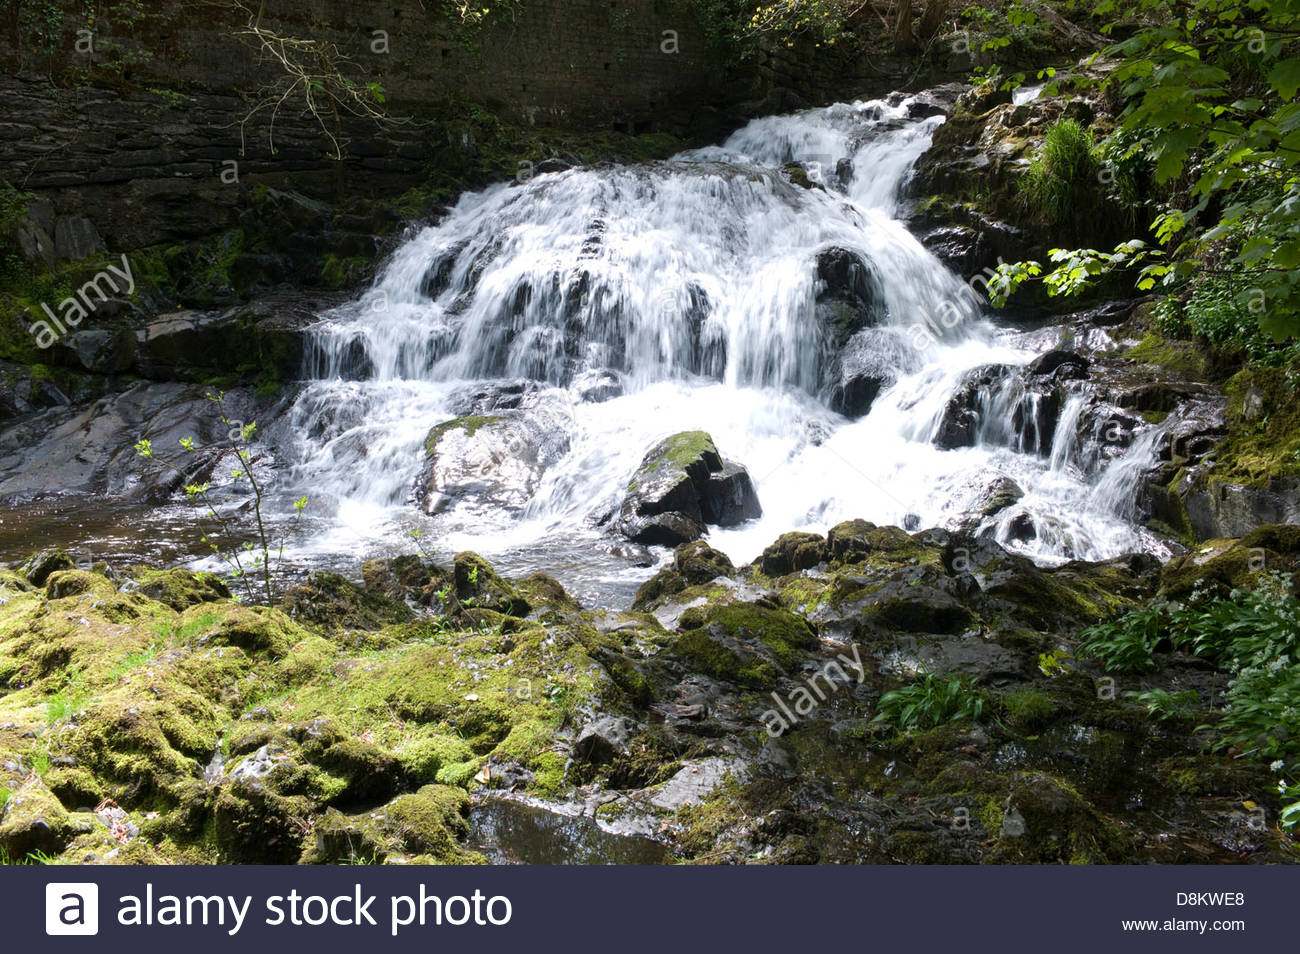 The 'Fairy Falls', Trefriw, Conwy Valley, North Wales, UK Stock Photo